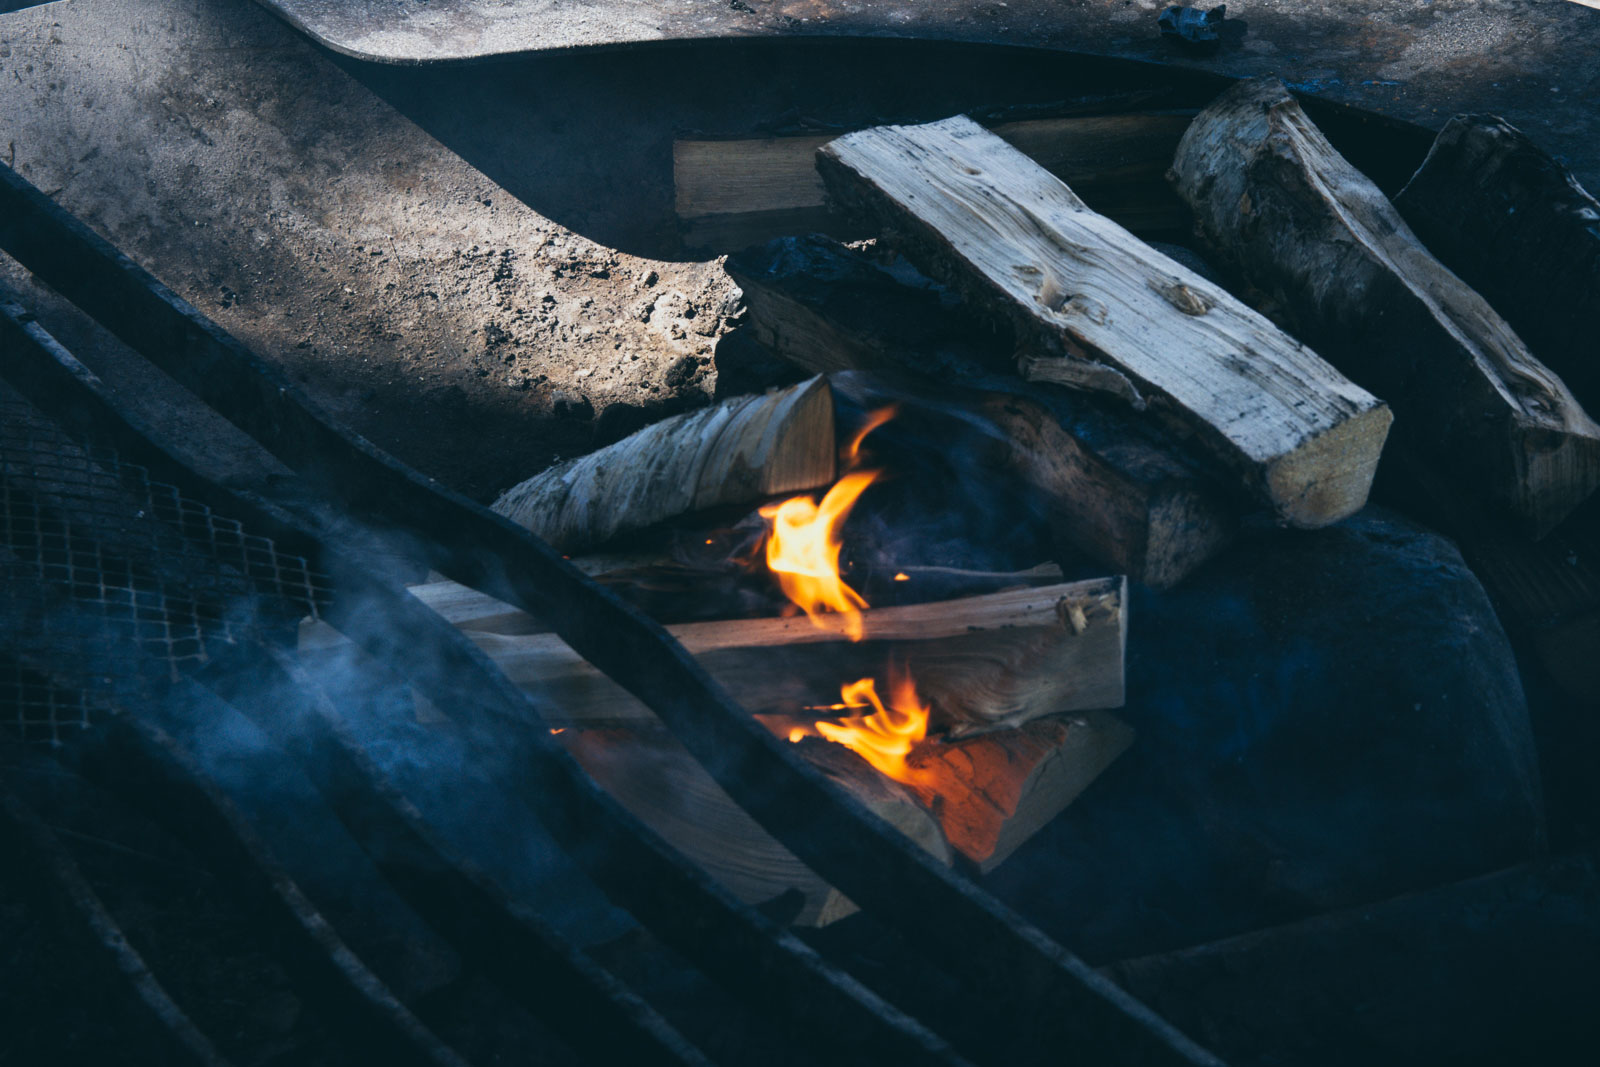 A moody fire in a grill.